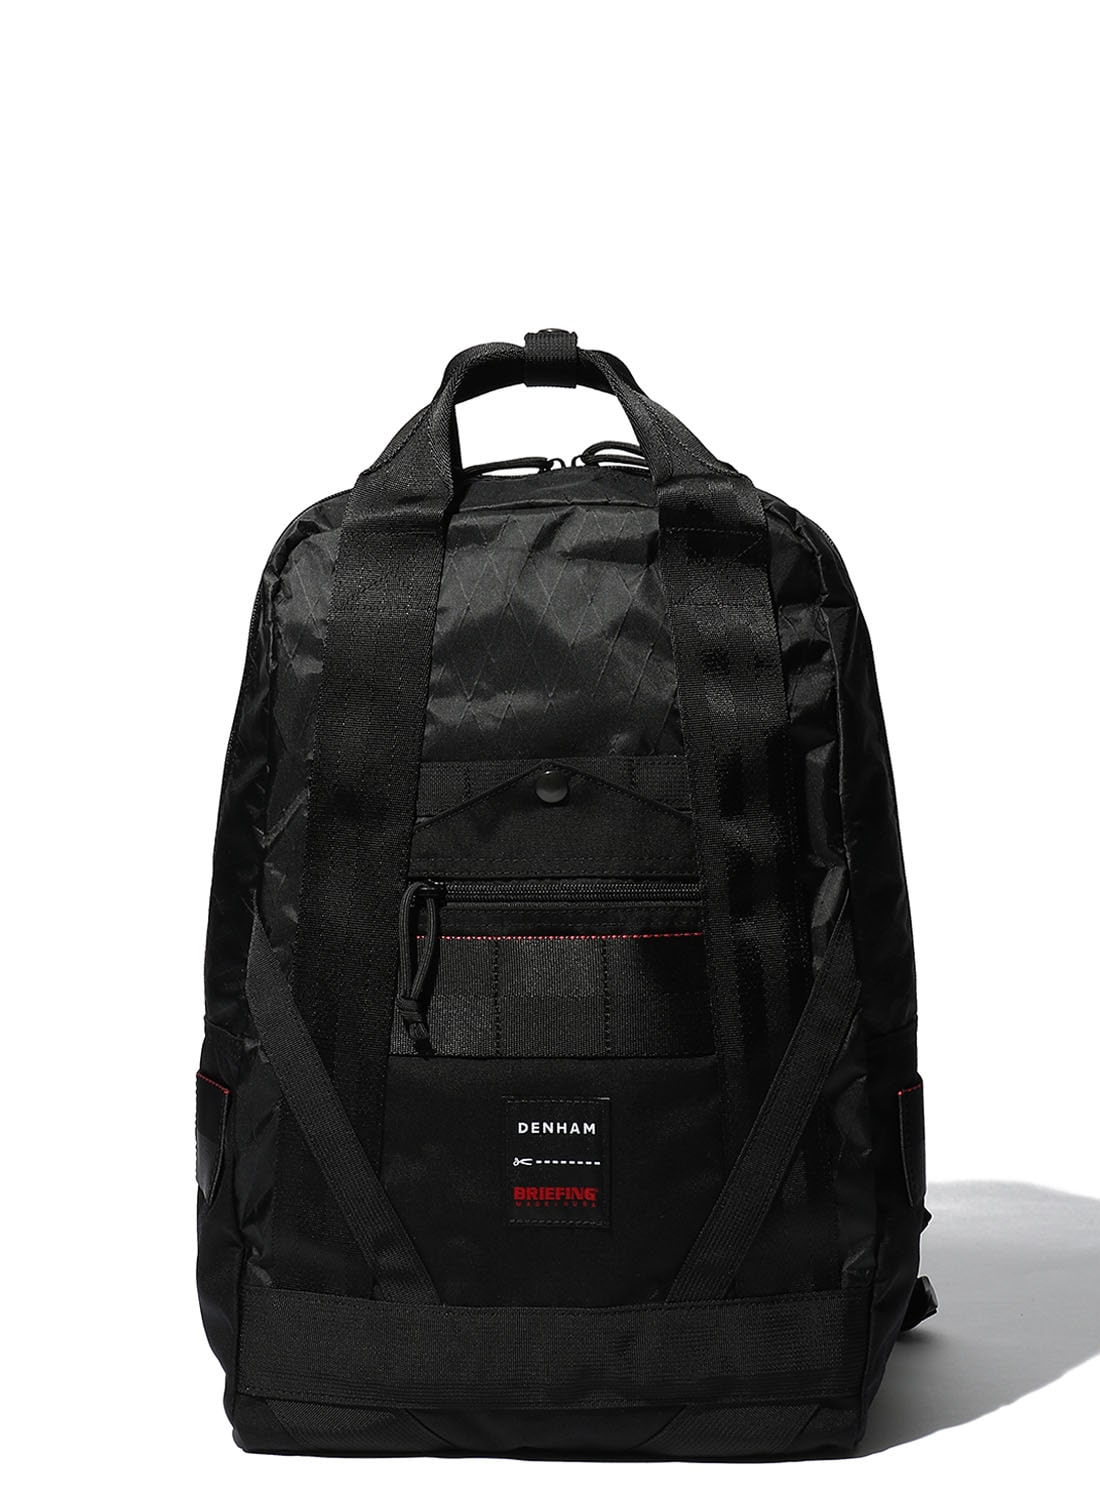 【DENHAM X BRIEFING】 NYLON COMBI BP